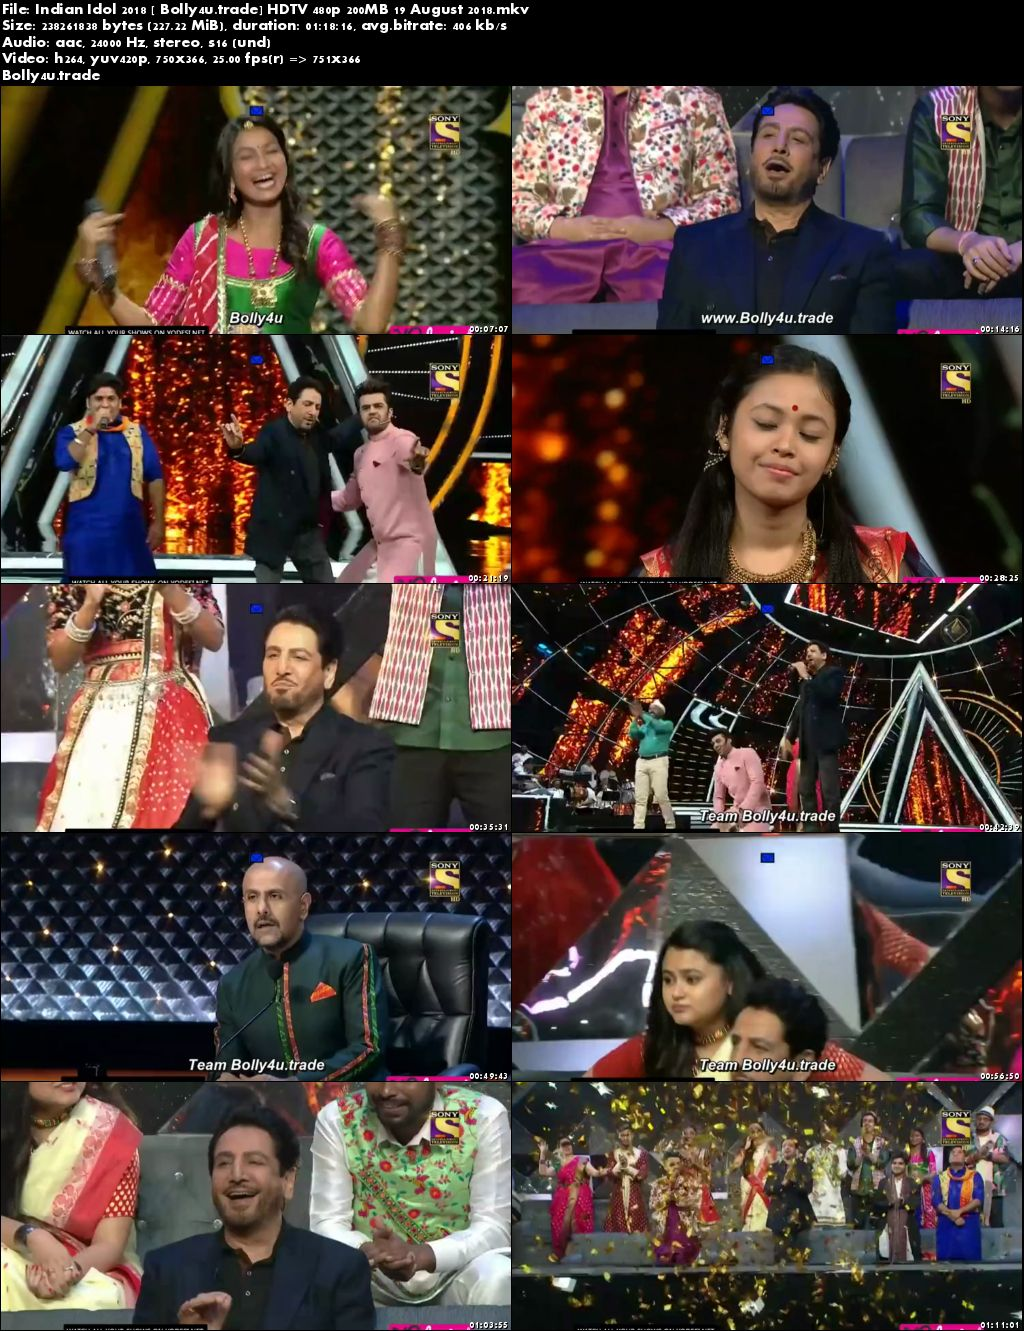 Indian Idol 2018 HDTV 480p 200MB 19 August 2018 Download